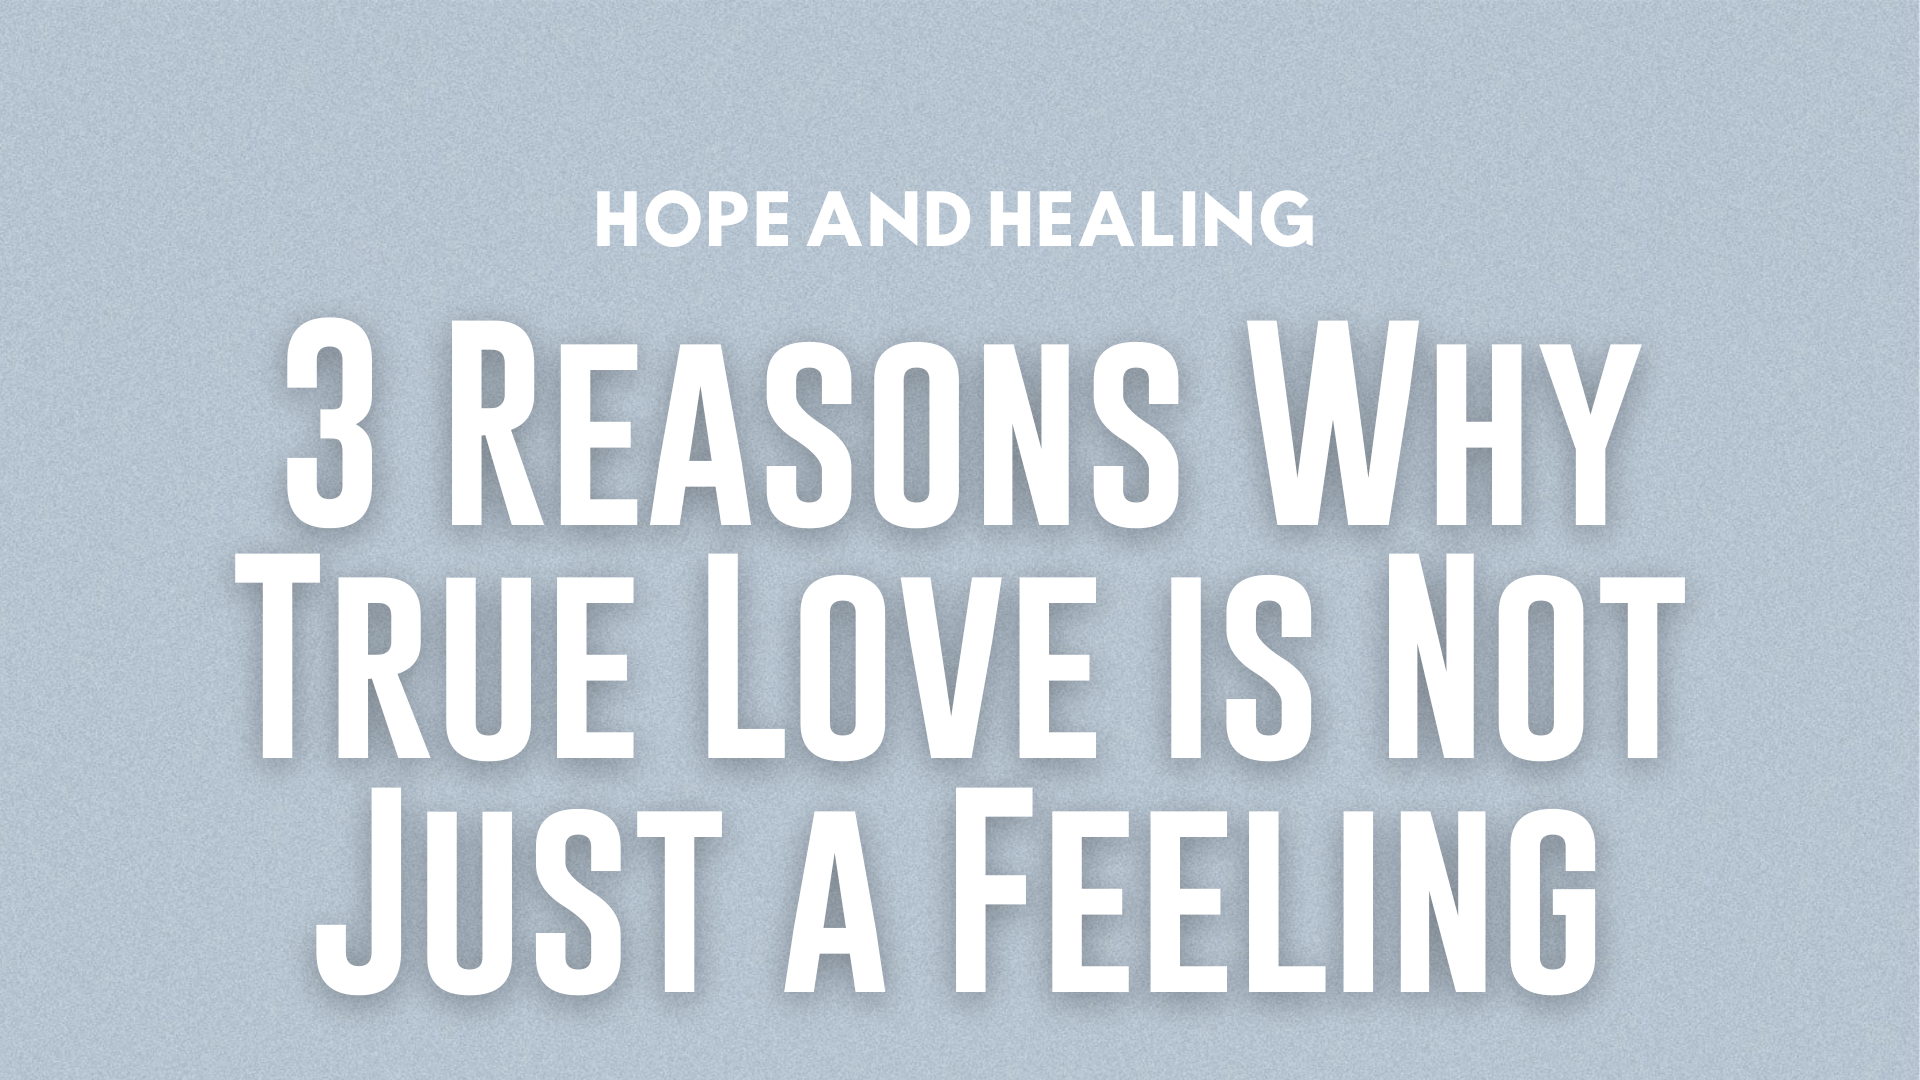 3 Reasons Why True Love is Not Just a Feeling